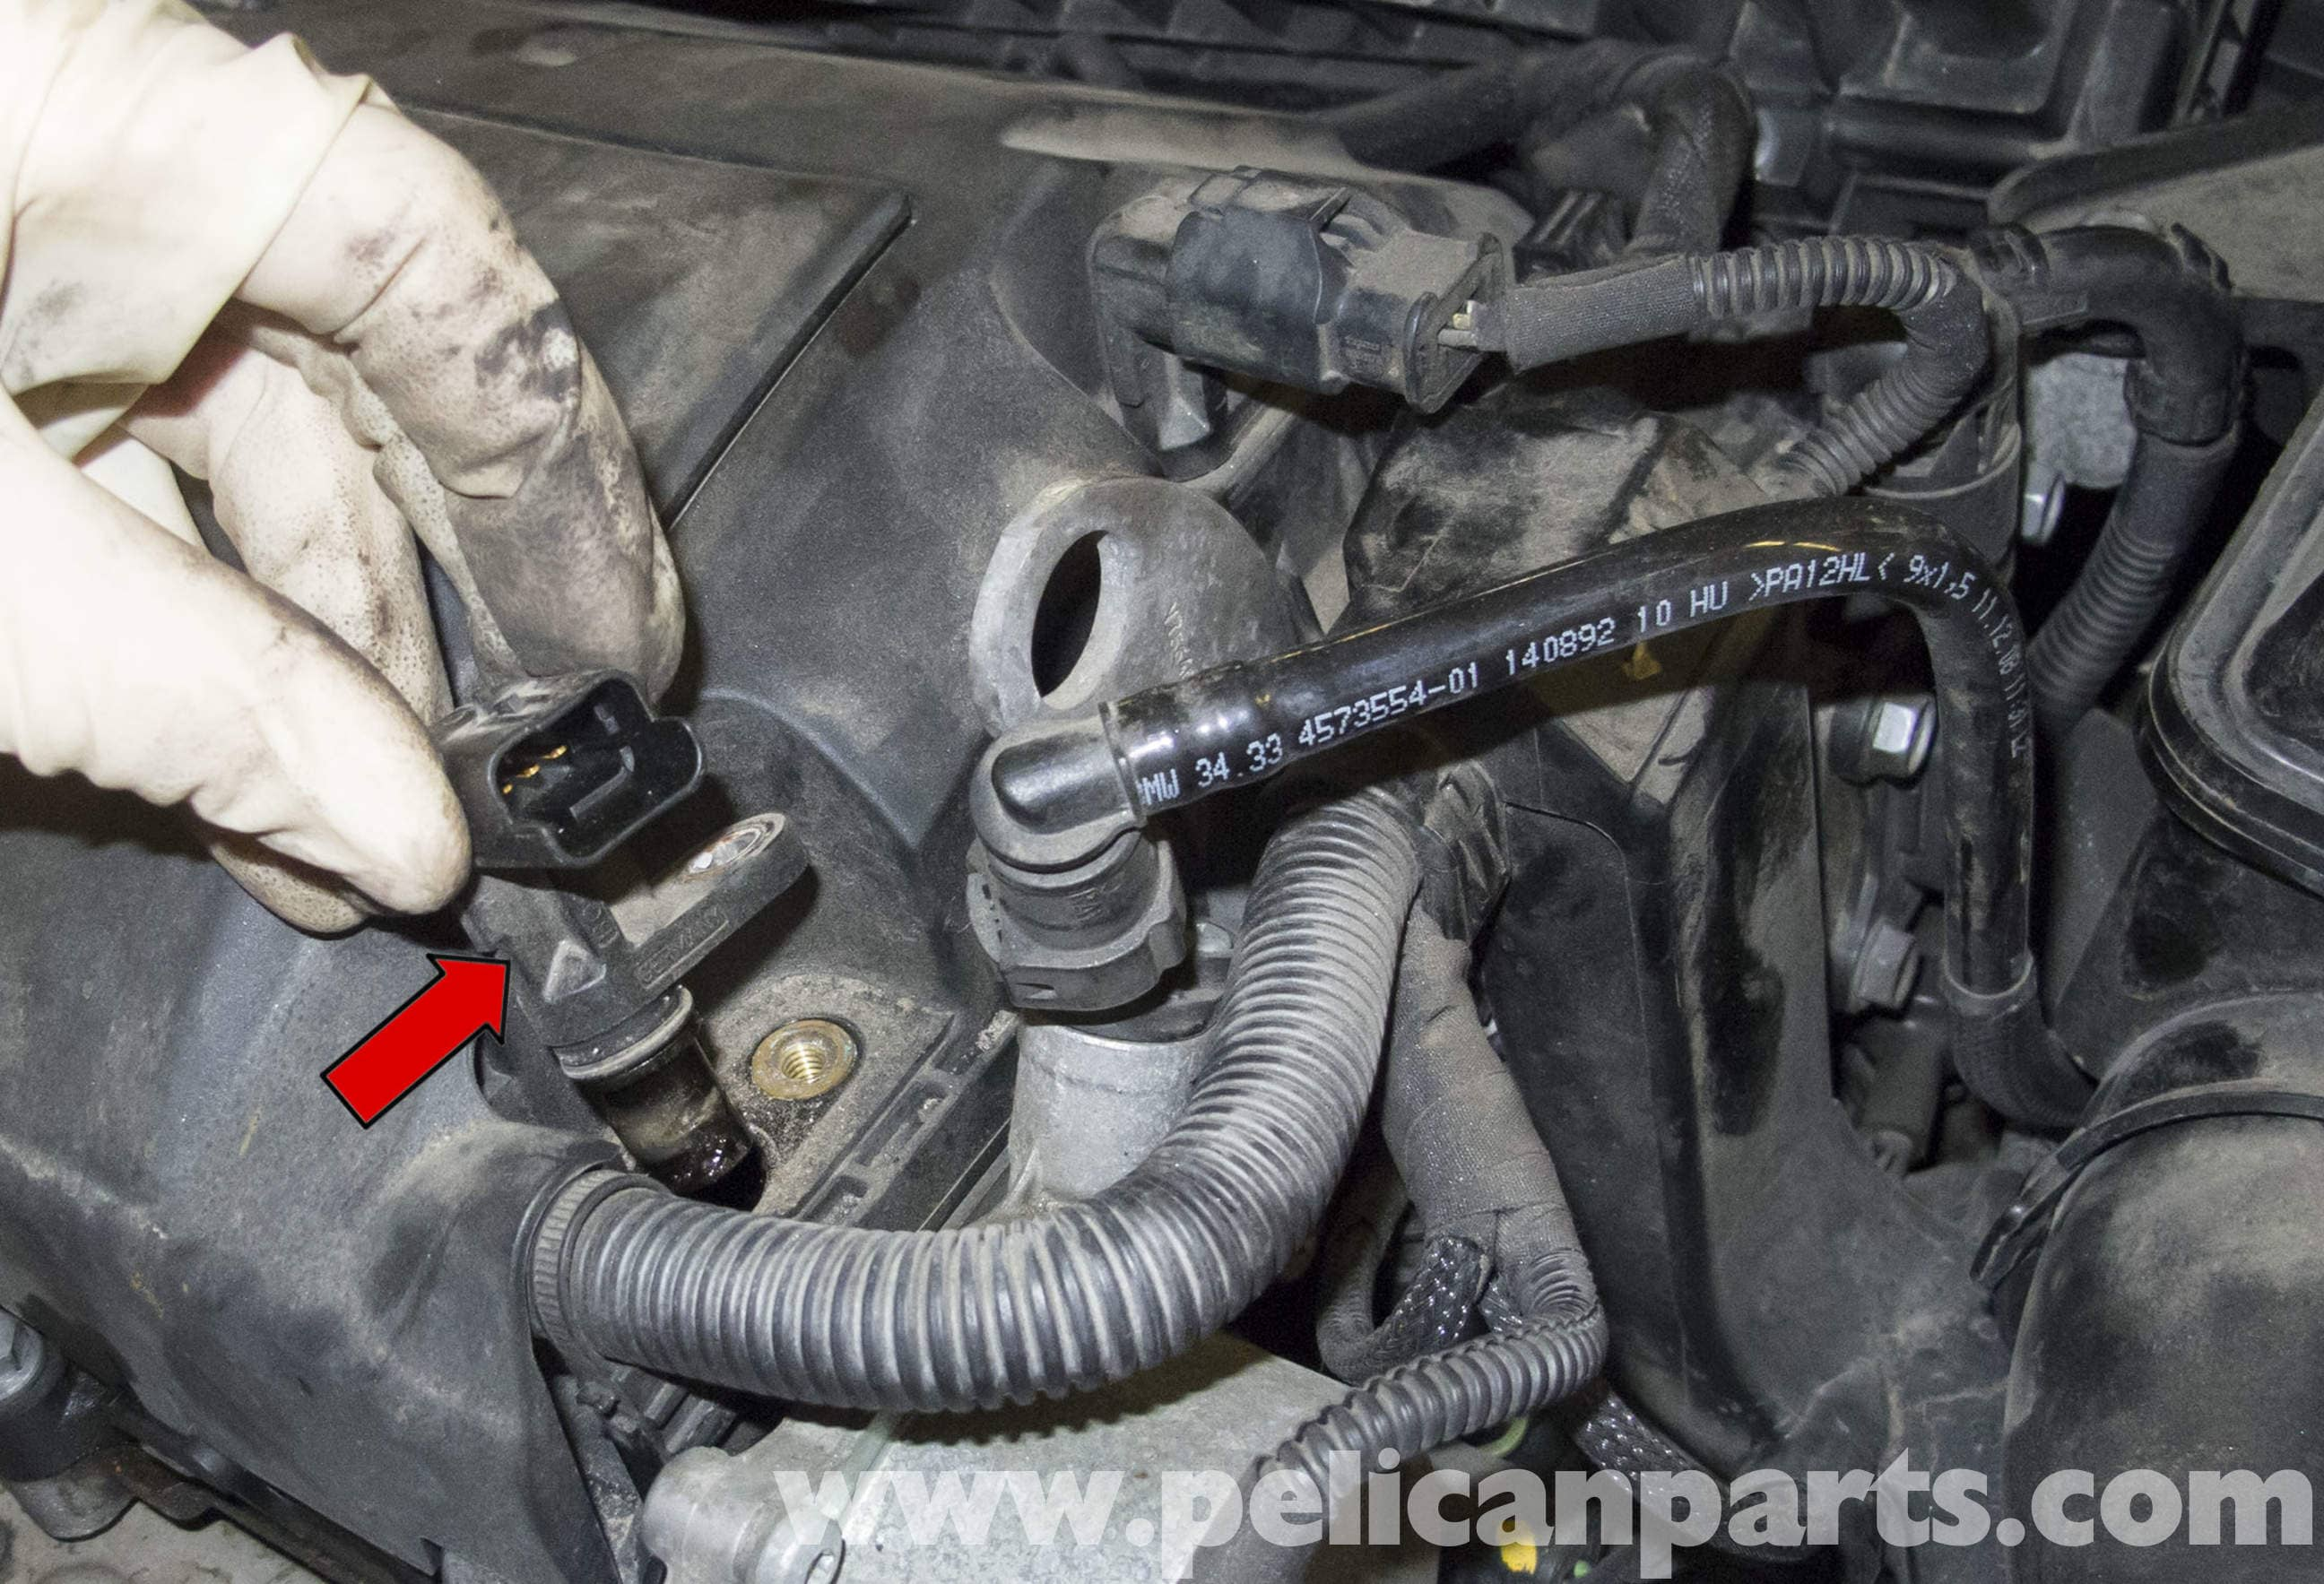 MINI Cooper R56 Camshaft Sensor Replacement (2007-2011